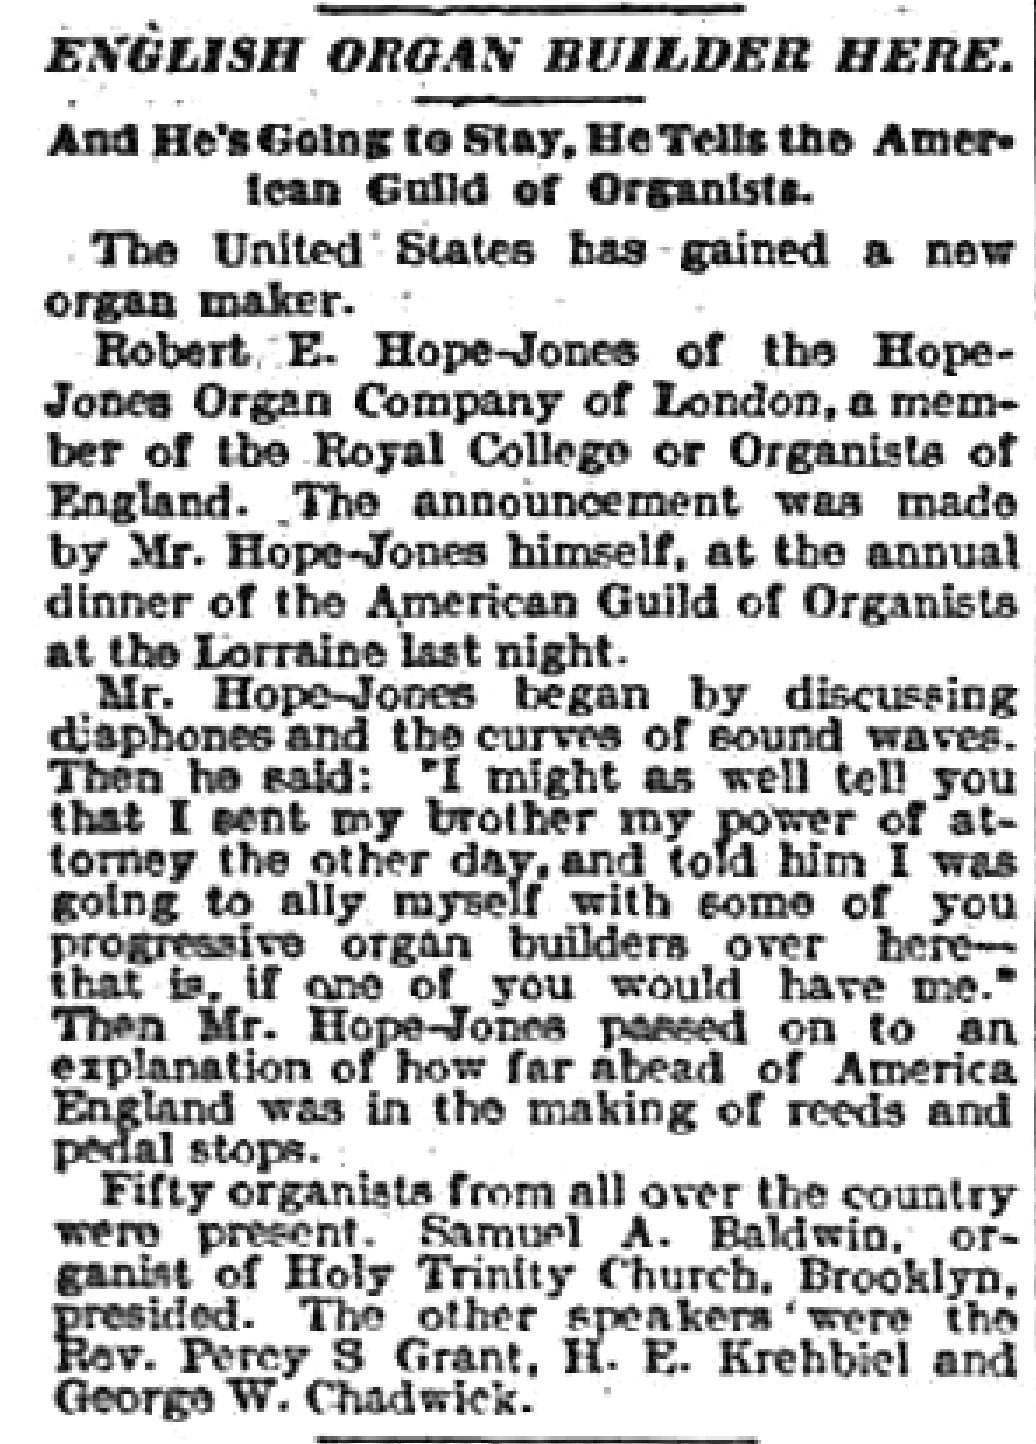 English organ builder here, article (New York Sun, 1903-05-28).jpg